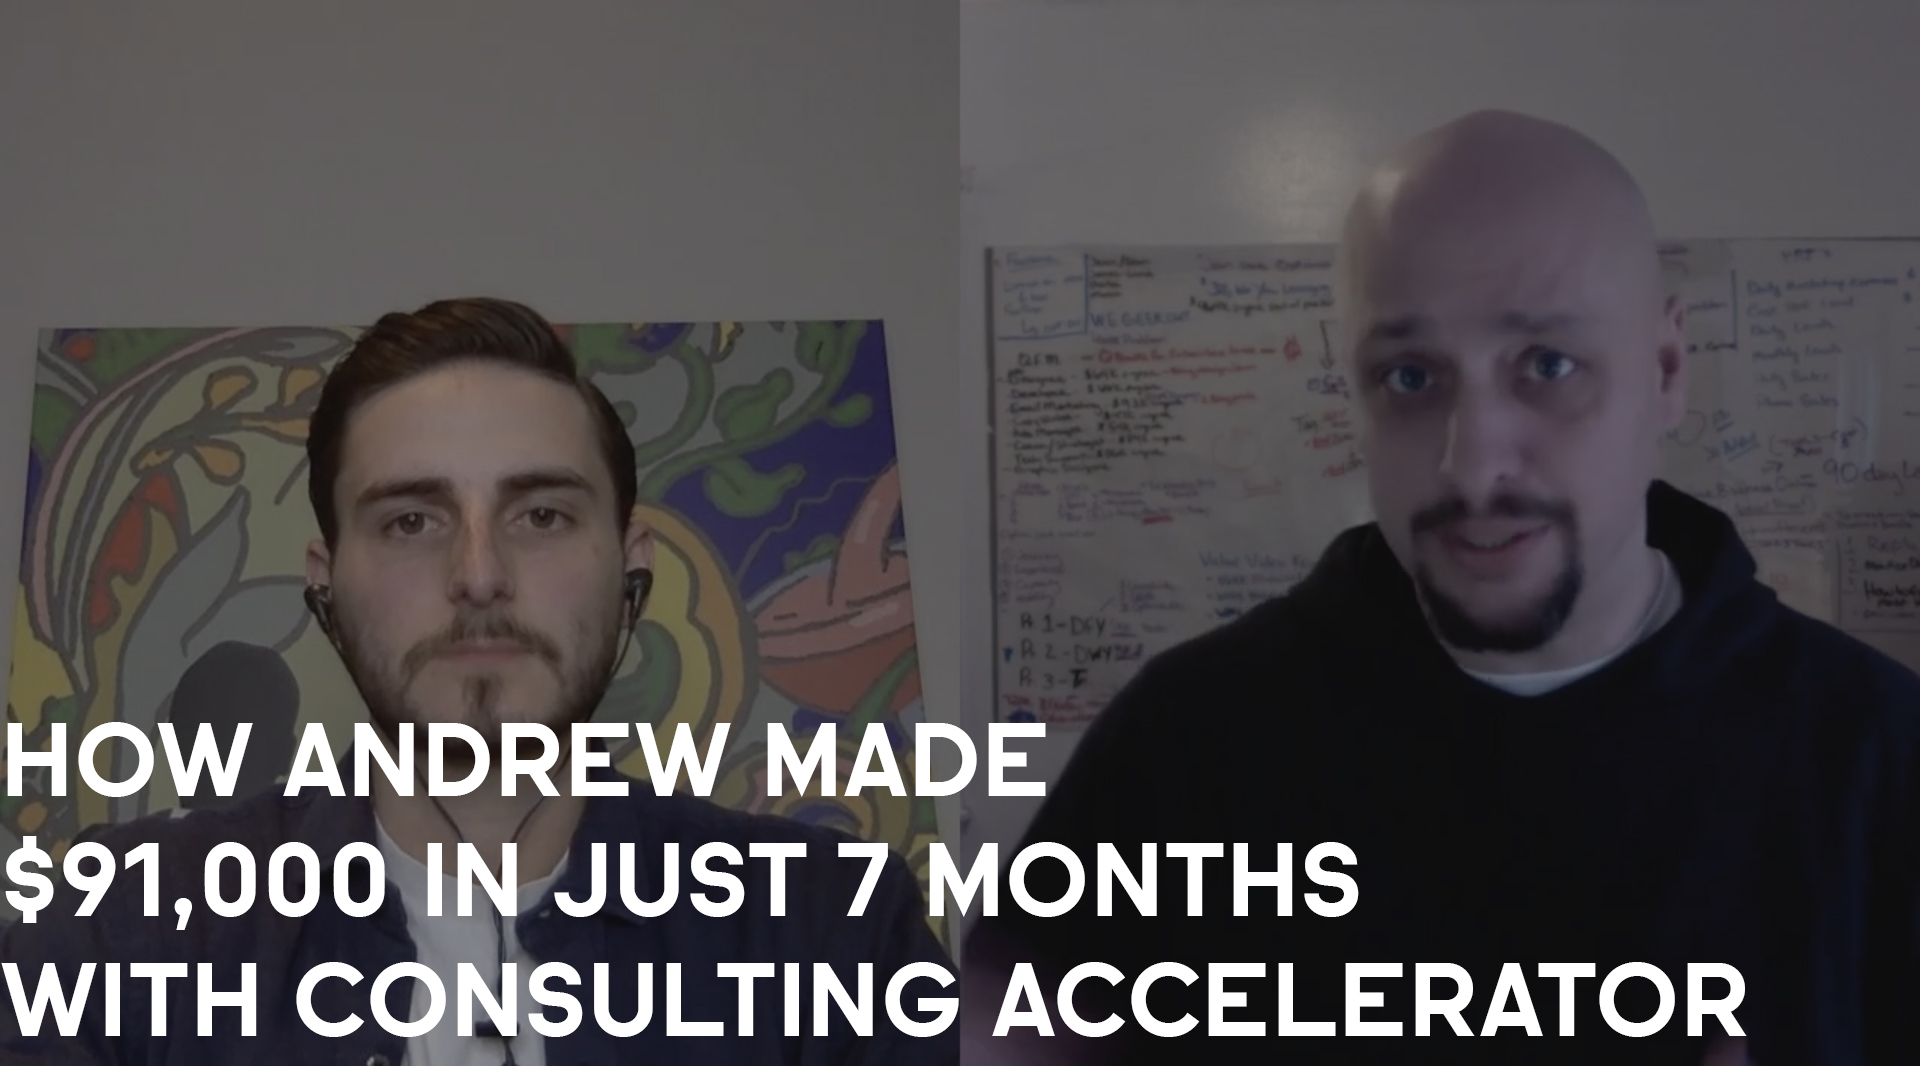 How Andrew Neumann Made $91,000 In Just 7 Months With Accelerator